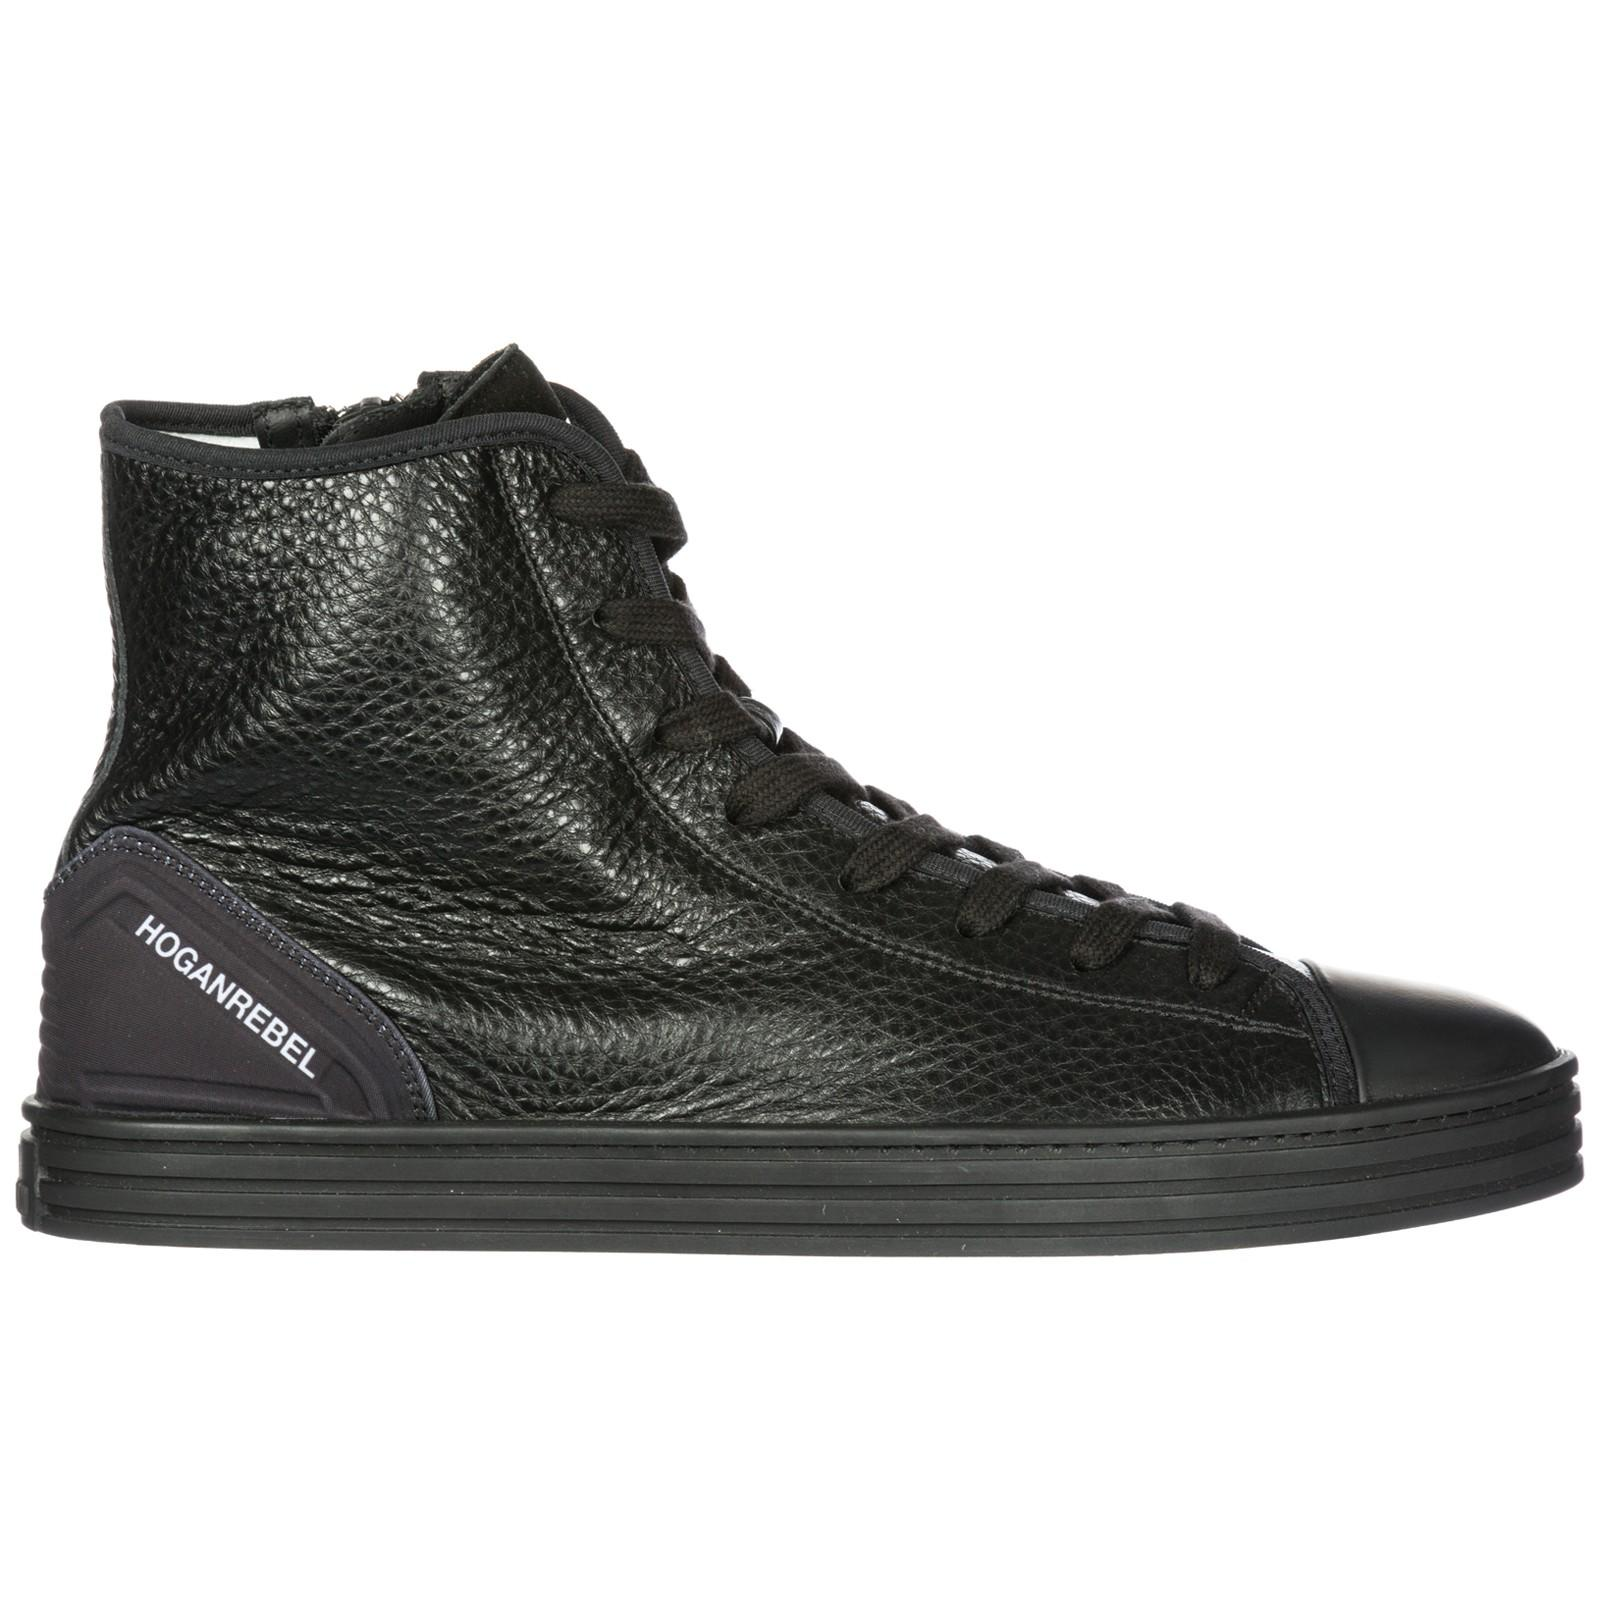 e072ffe28 Hogan Rebel Men's Shoes High Top Leather Trainers Sneakers R141 In Black